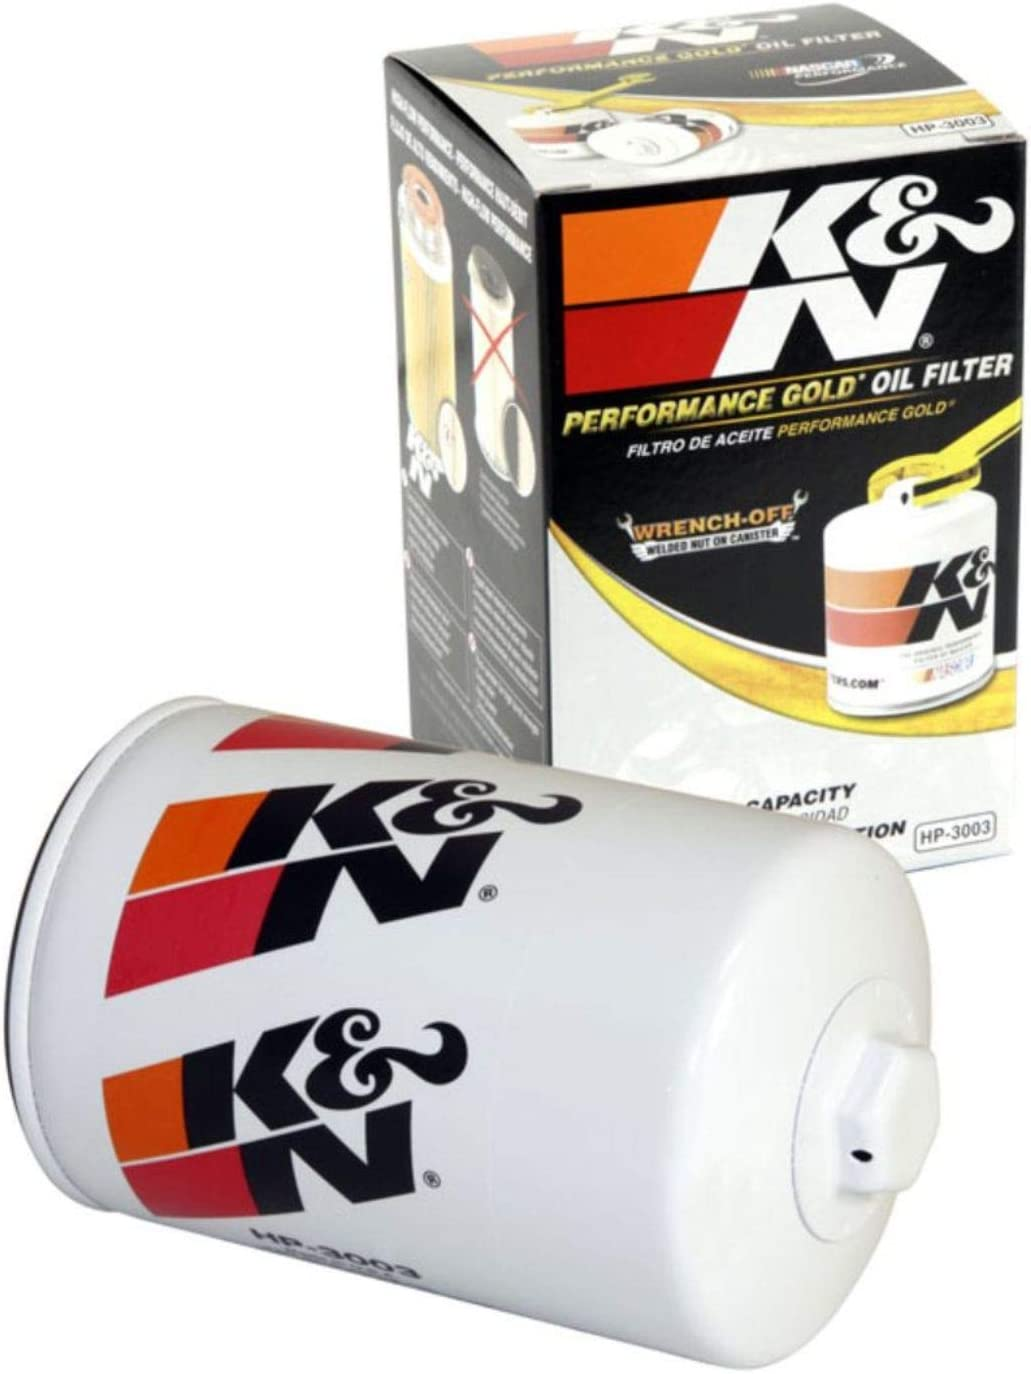 K&N Premium Oil Filter: Designed to Protect your Engine: Fits Select 2001-2019 CHEVROLET/GMC/HUMMER (Silverado, Express, Kodiak, 2500, 3500, 4500, 5500, 6500, Sierra, Savana, Topkick, H1), HP-3003